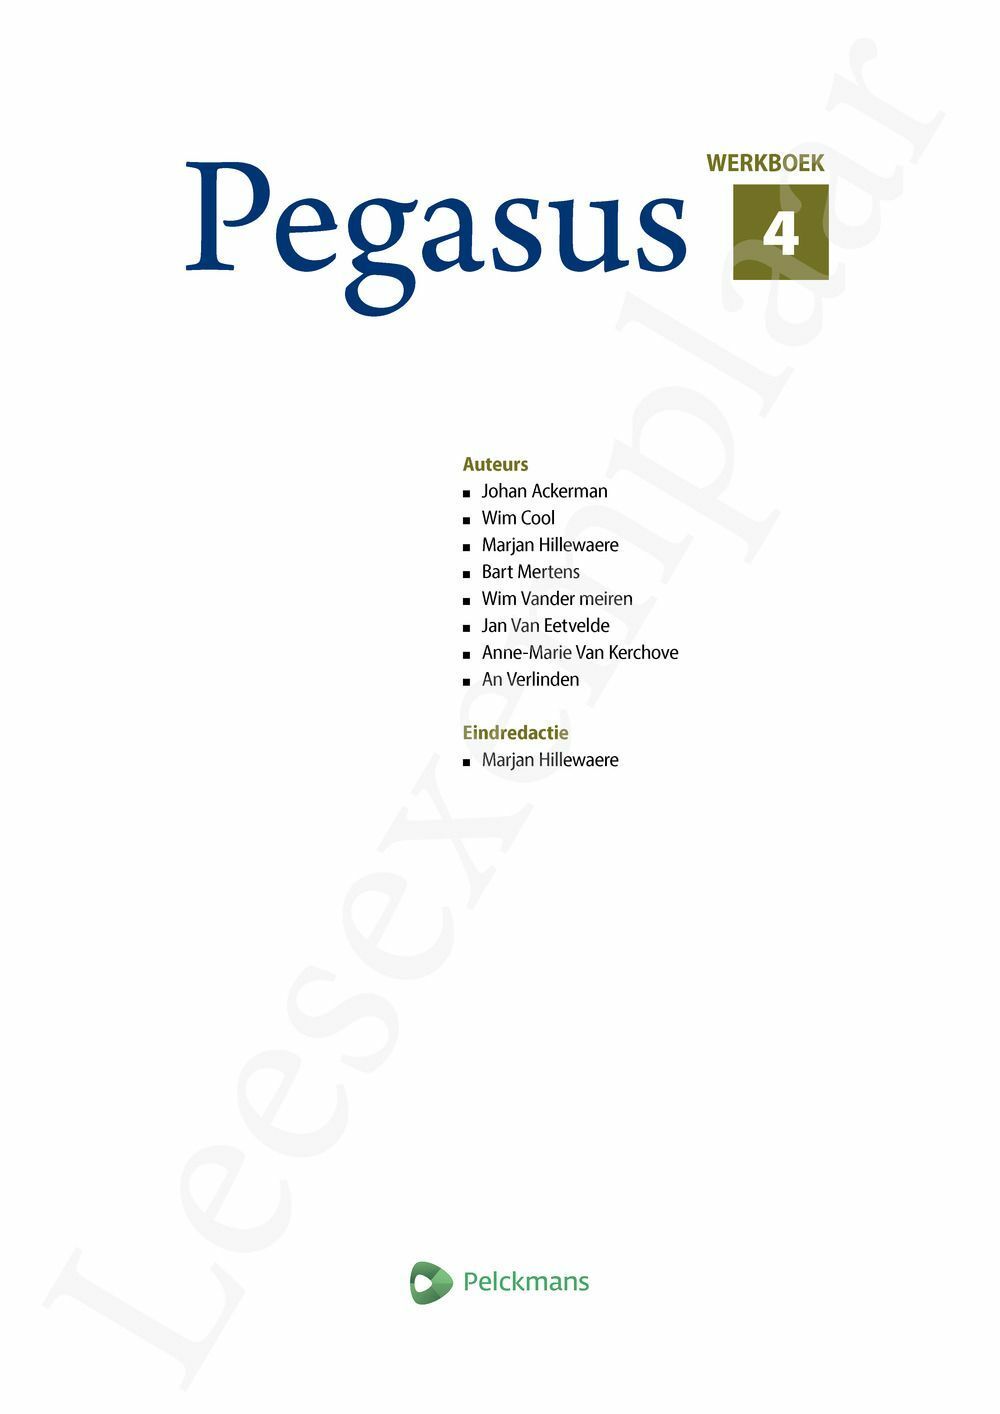 Preview: Pegasus 4 werkboek